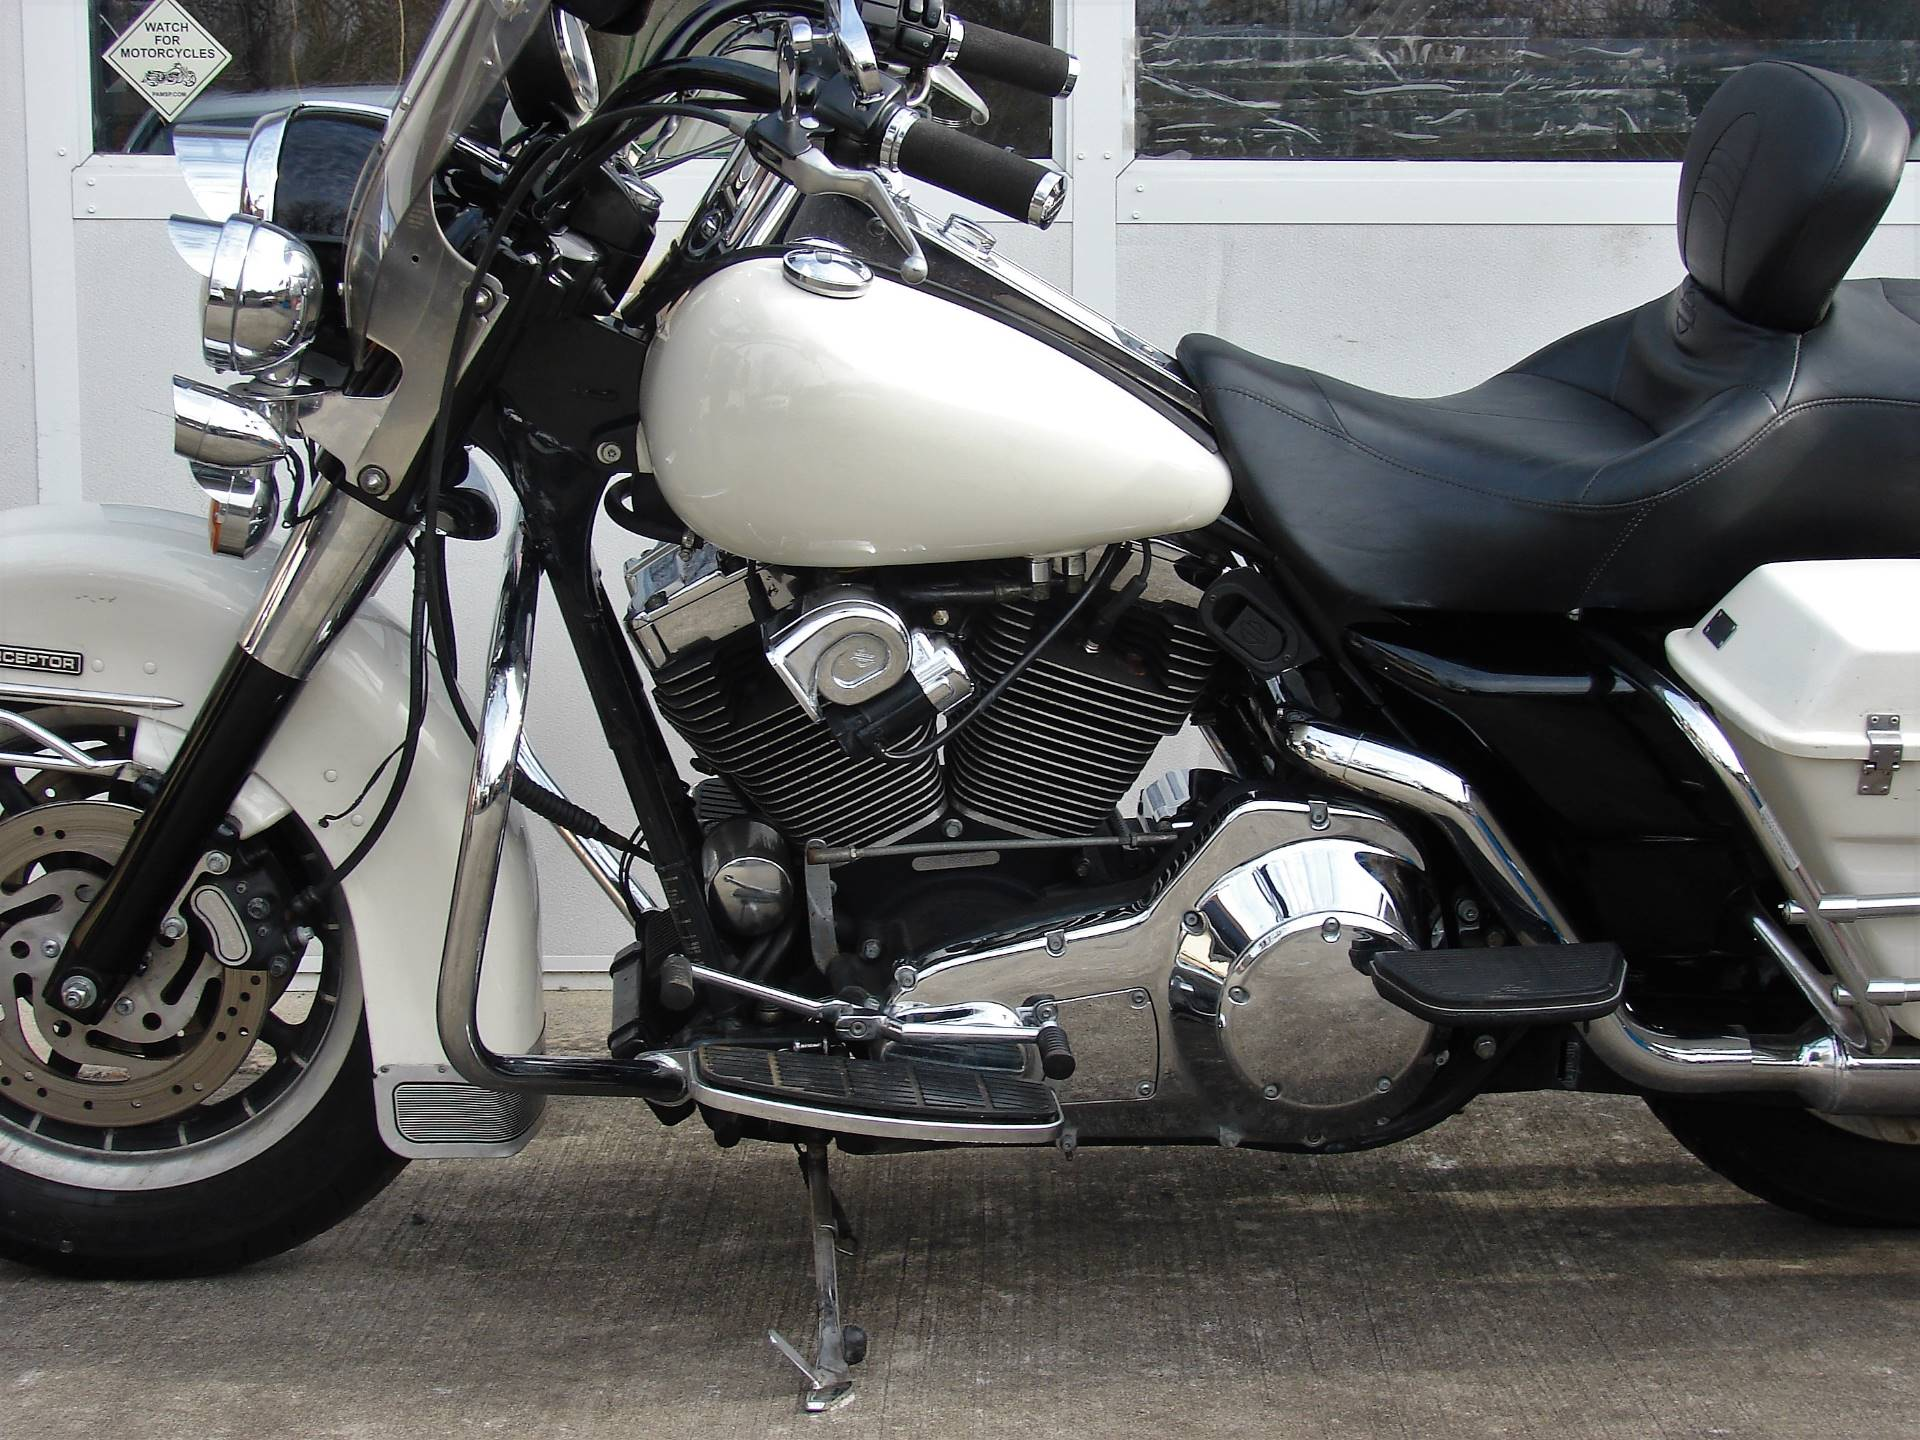 2001 Harley-Davidson FLHTPI Electra Glide (Police Special) - WHITE in Williamstown, New Jersey - Photo 6